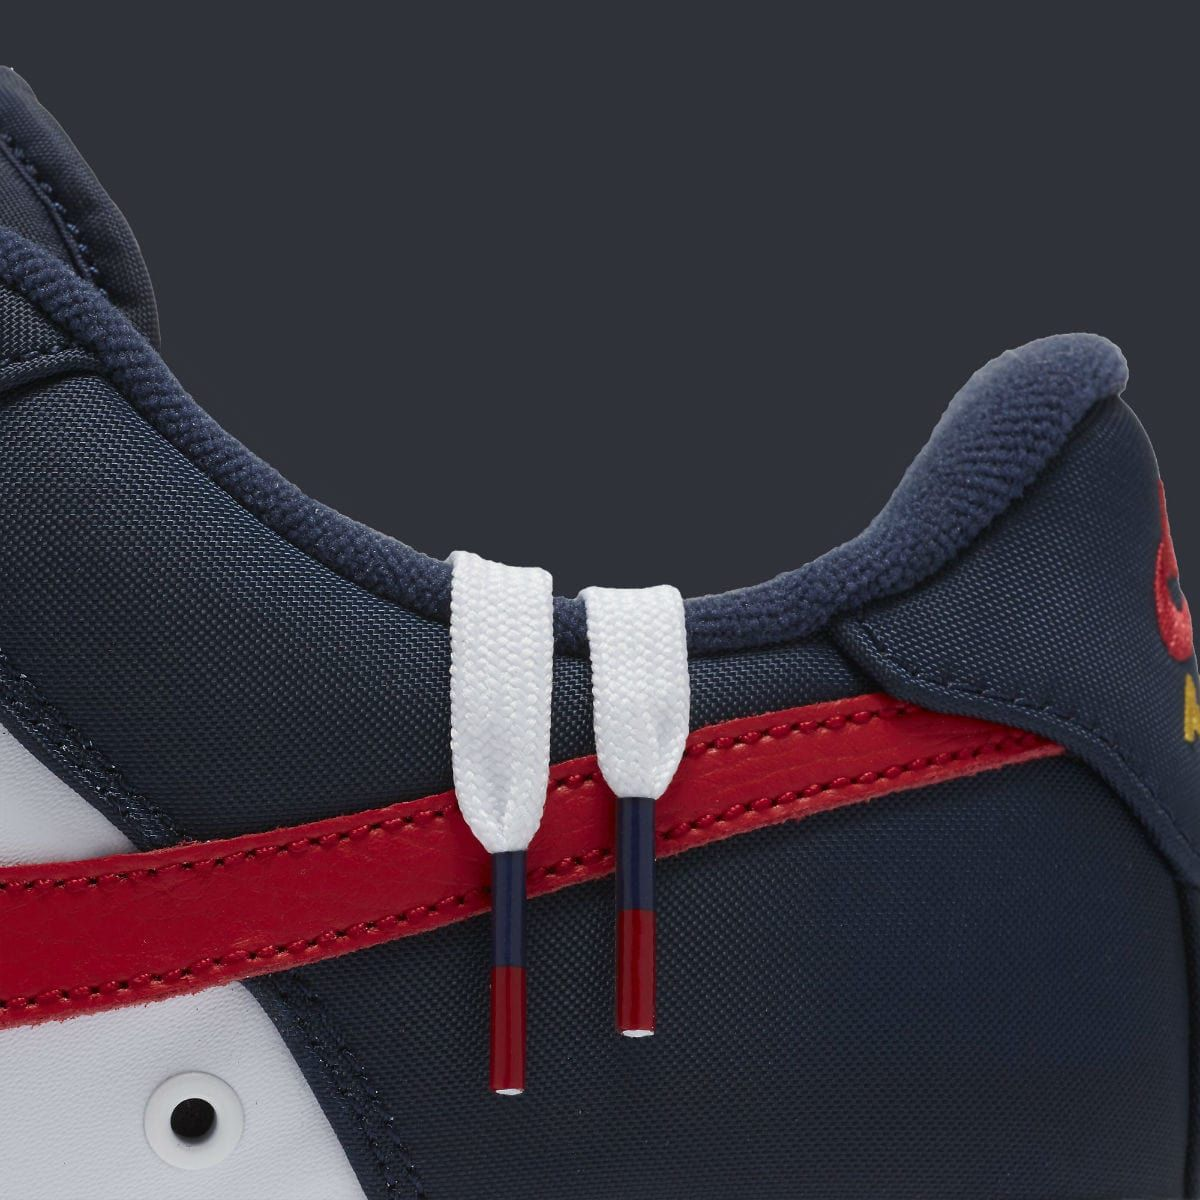 Nike Air Force 1 Low Mini Swoosh USA Release Date Laces 823511-601